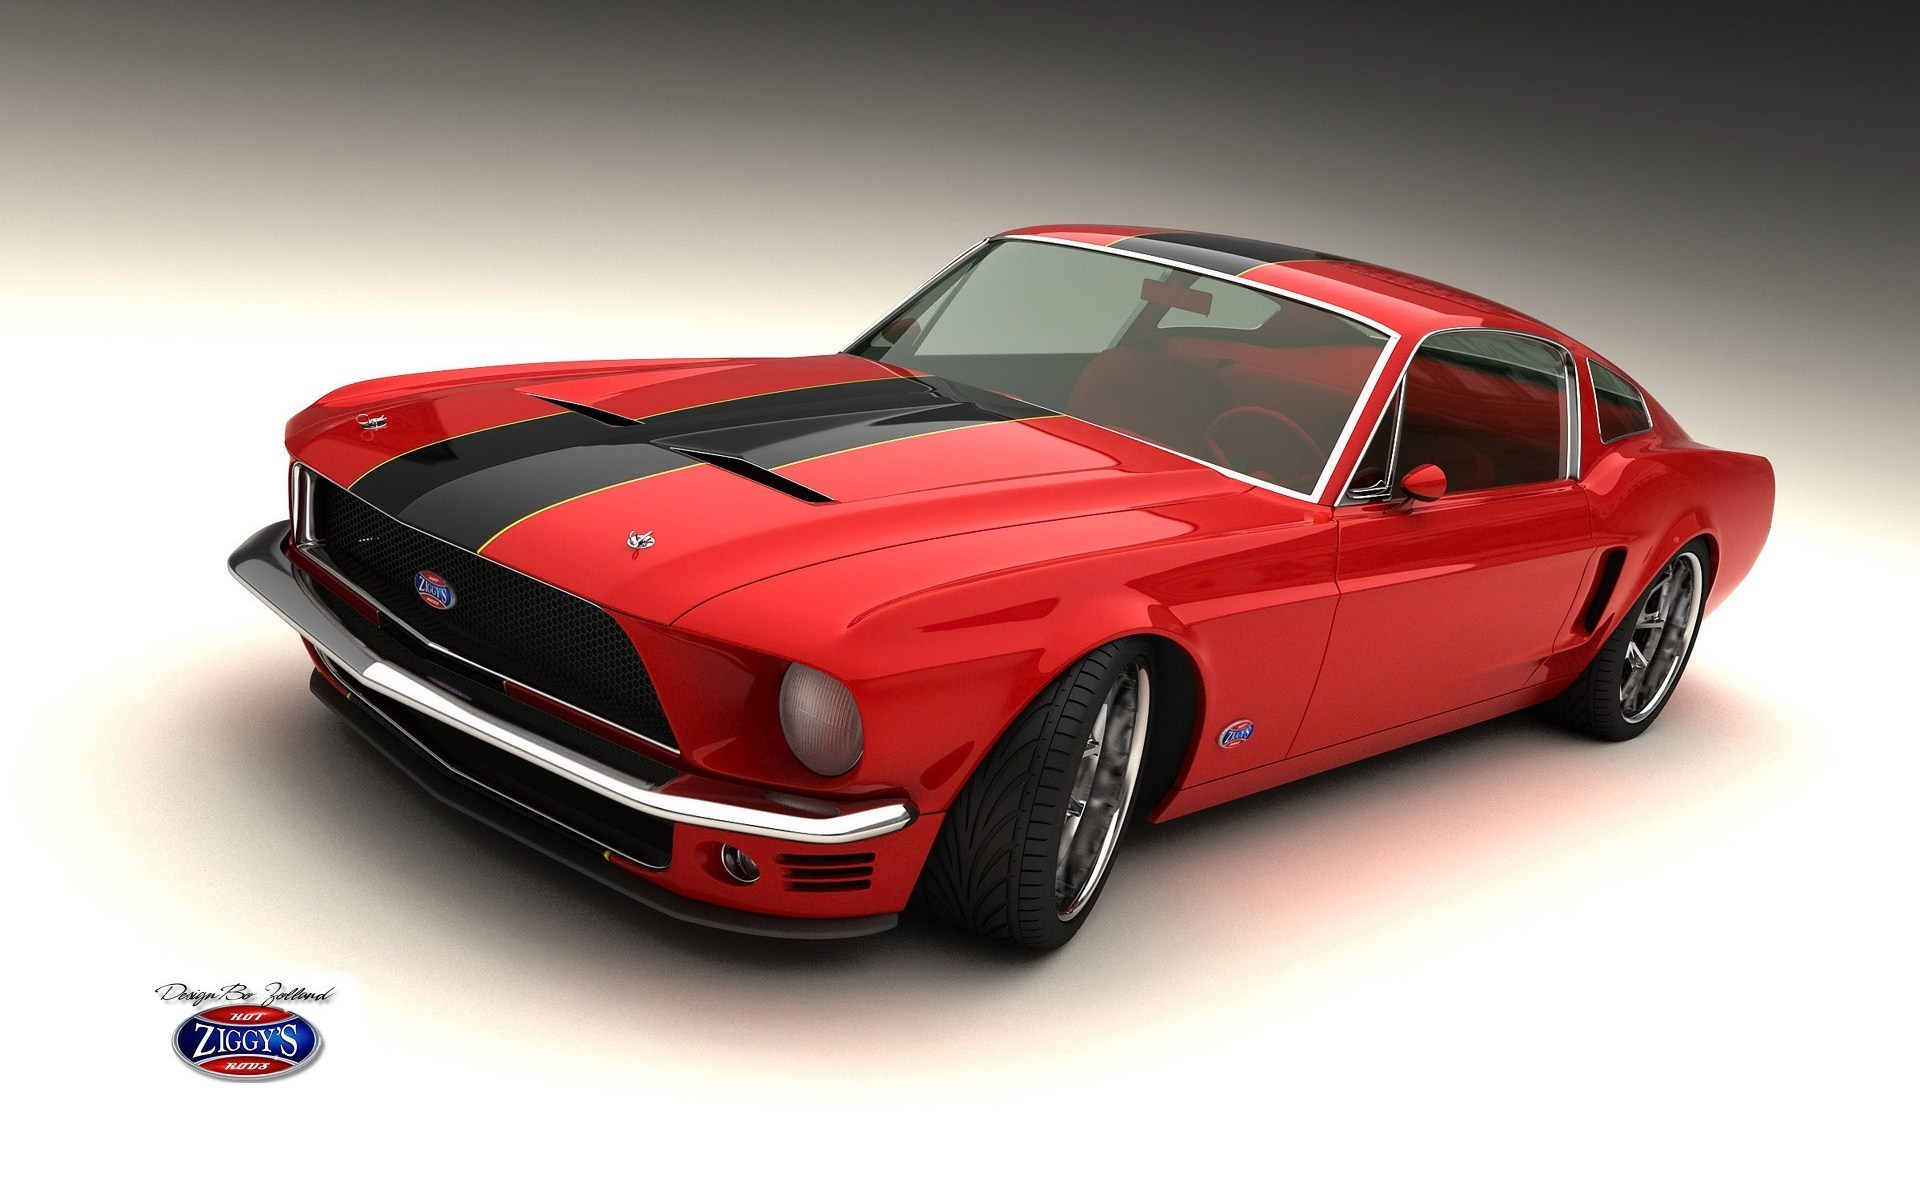 Red And Black Car Wallpapers: Red And Black Muscle Cars 38 Cool Hd Wallpaper